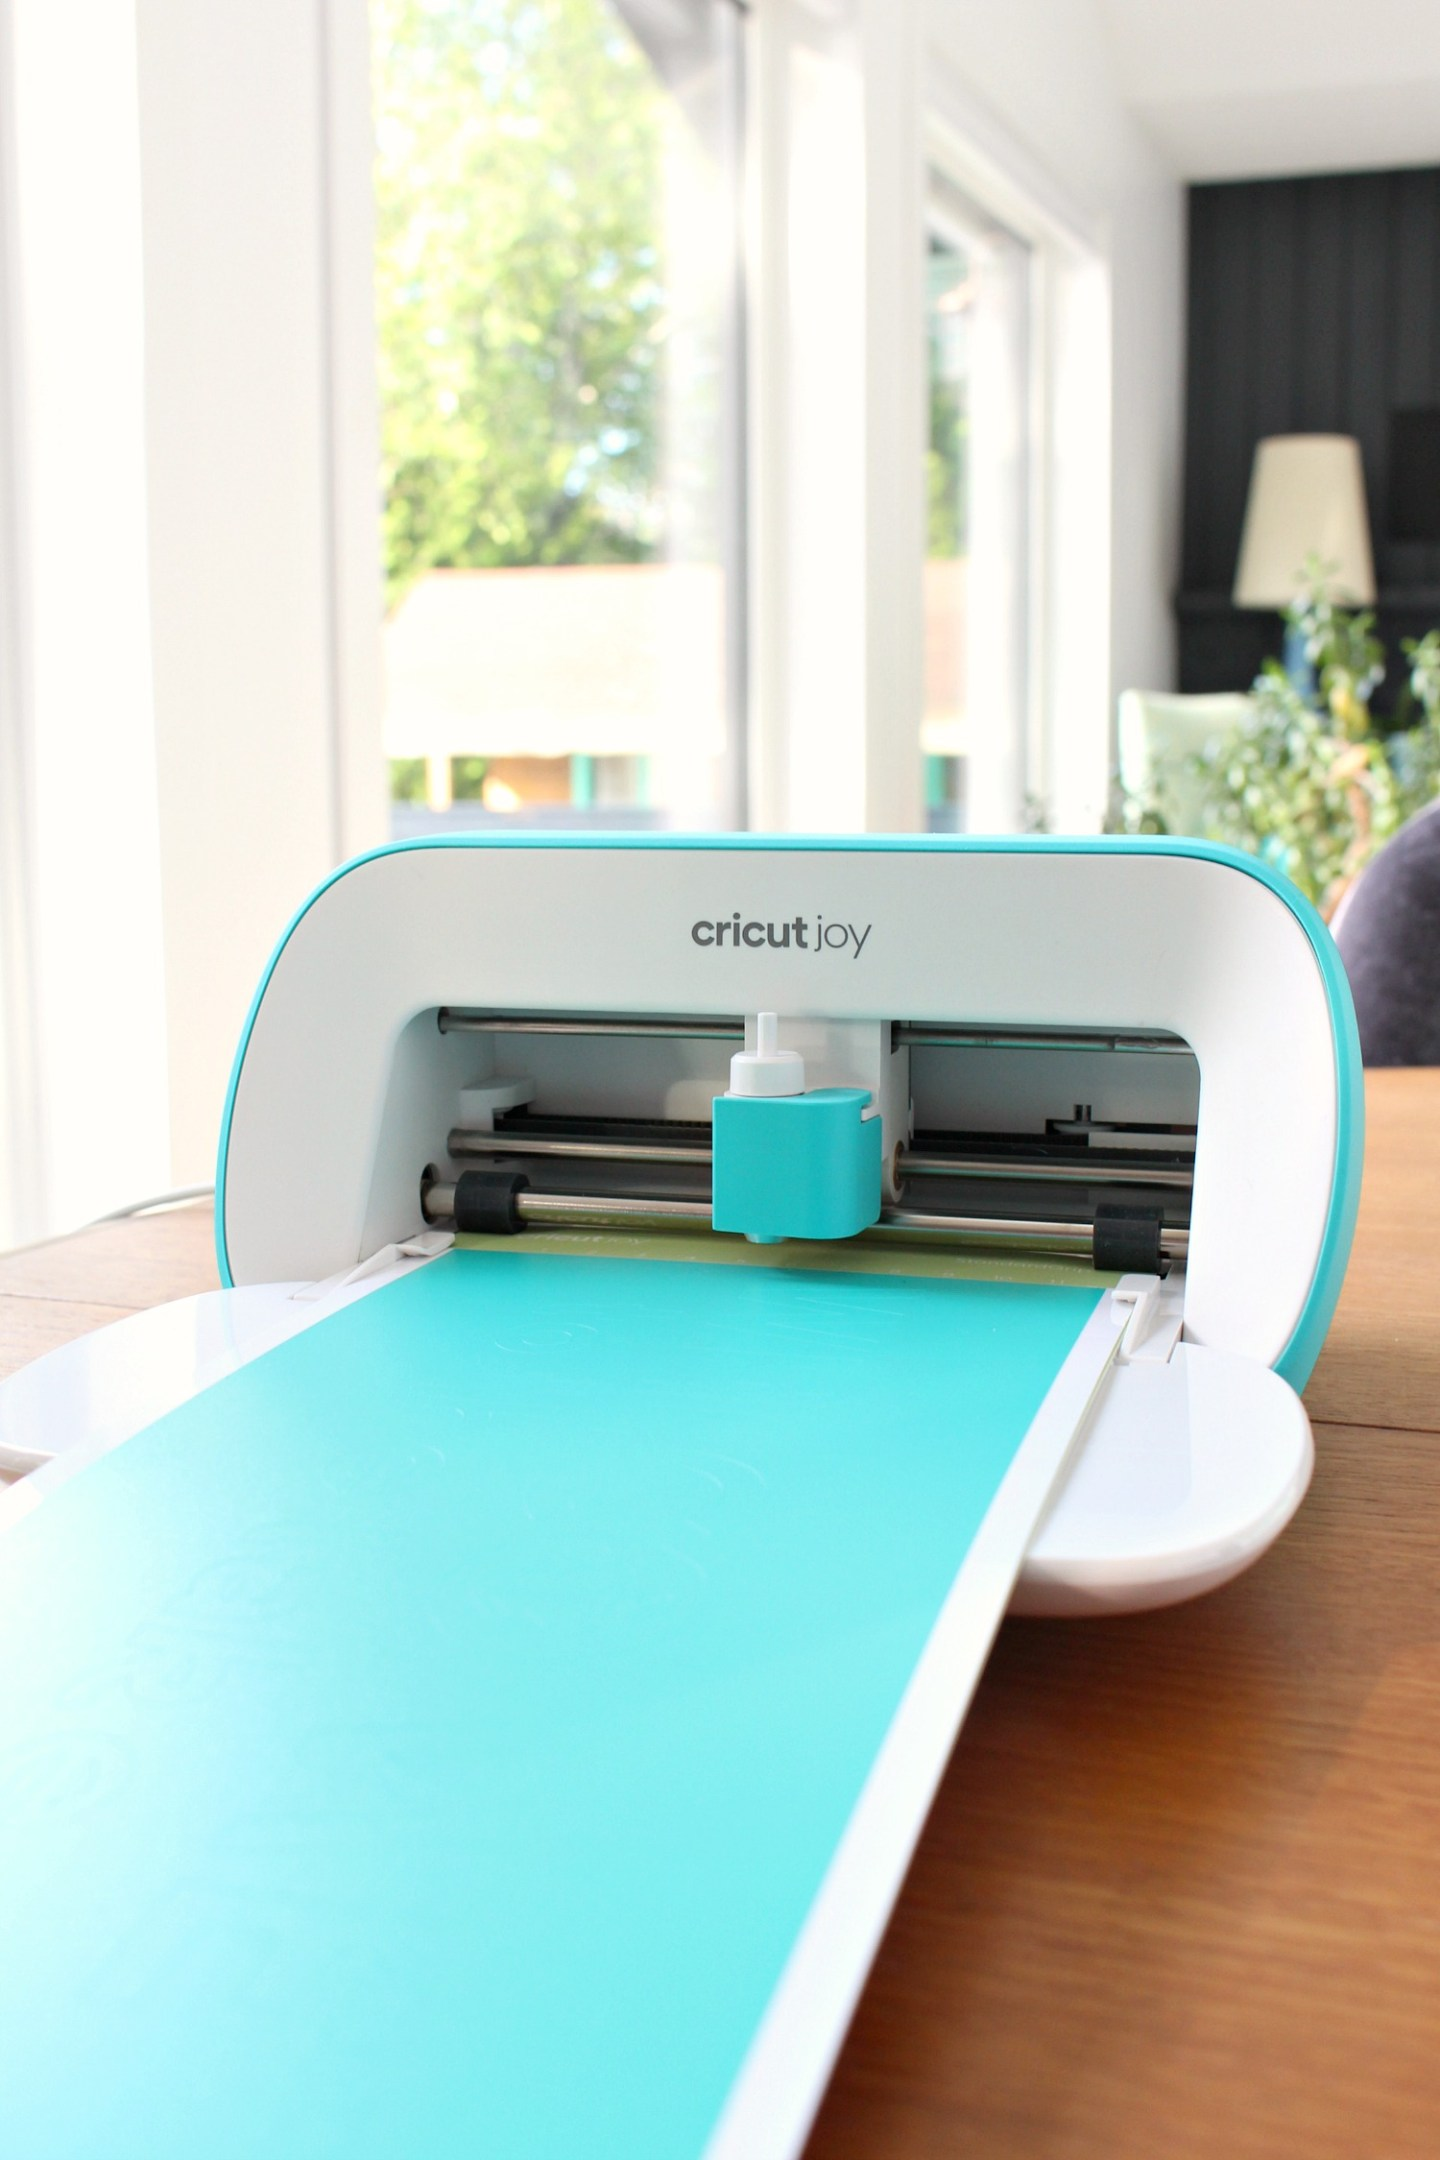 What Can a Cricut Joy Cut?